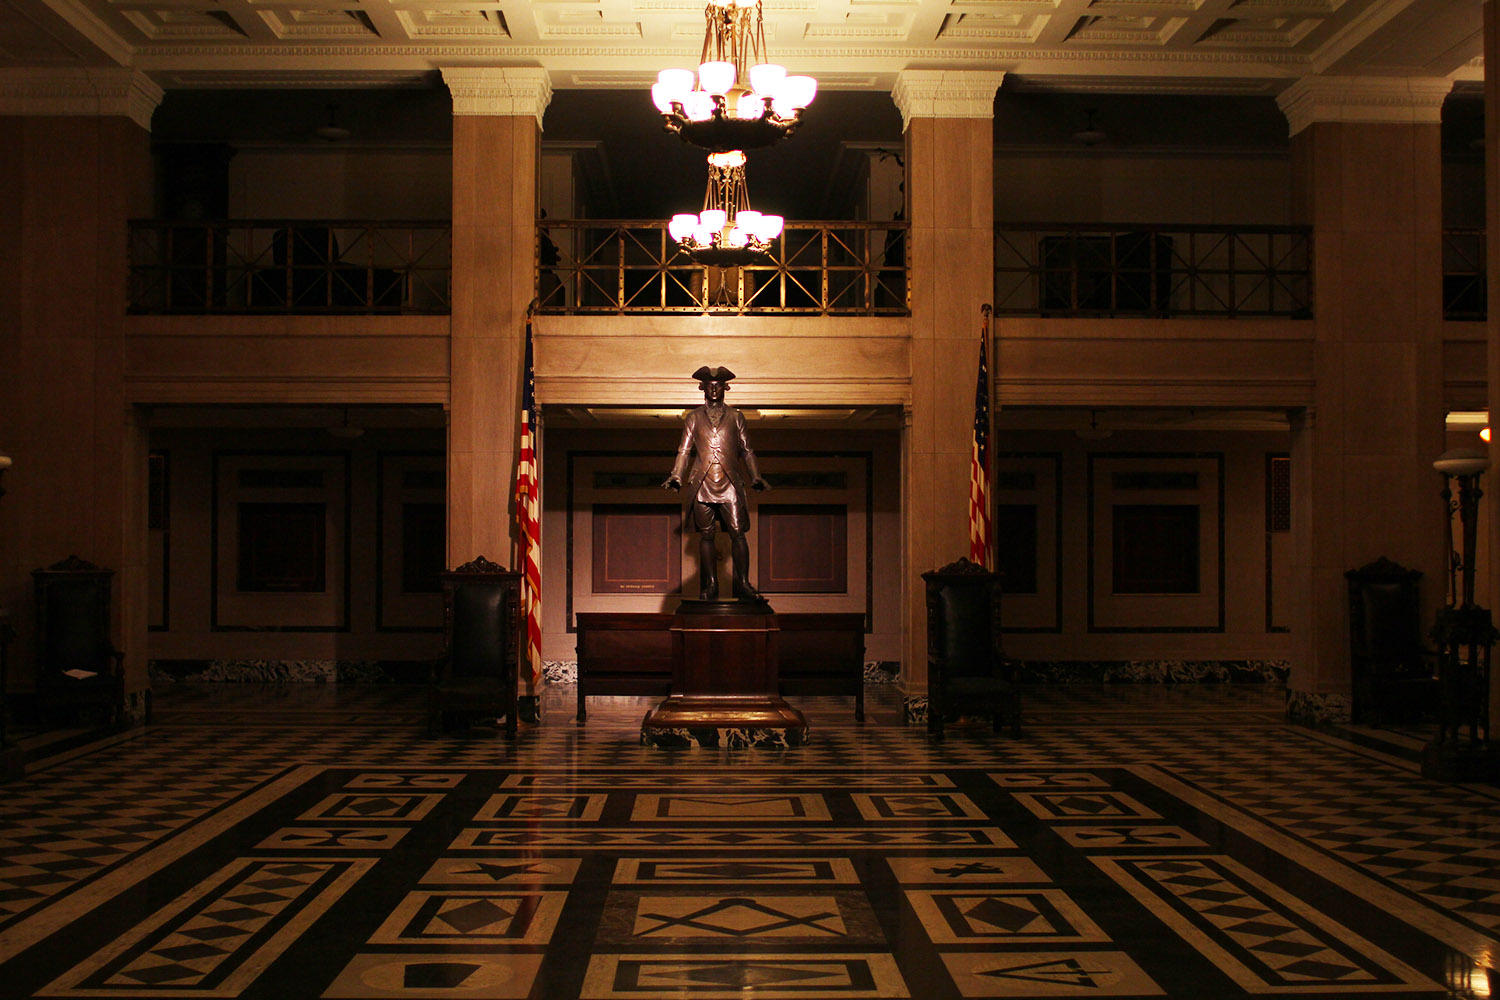 Inside The Masonic Temple Which Is On The Market For 6